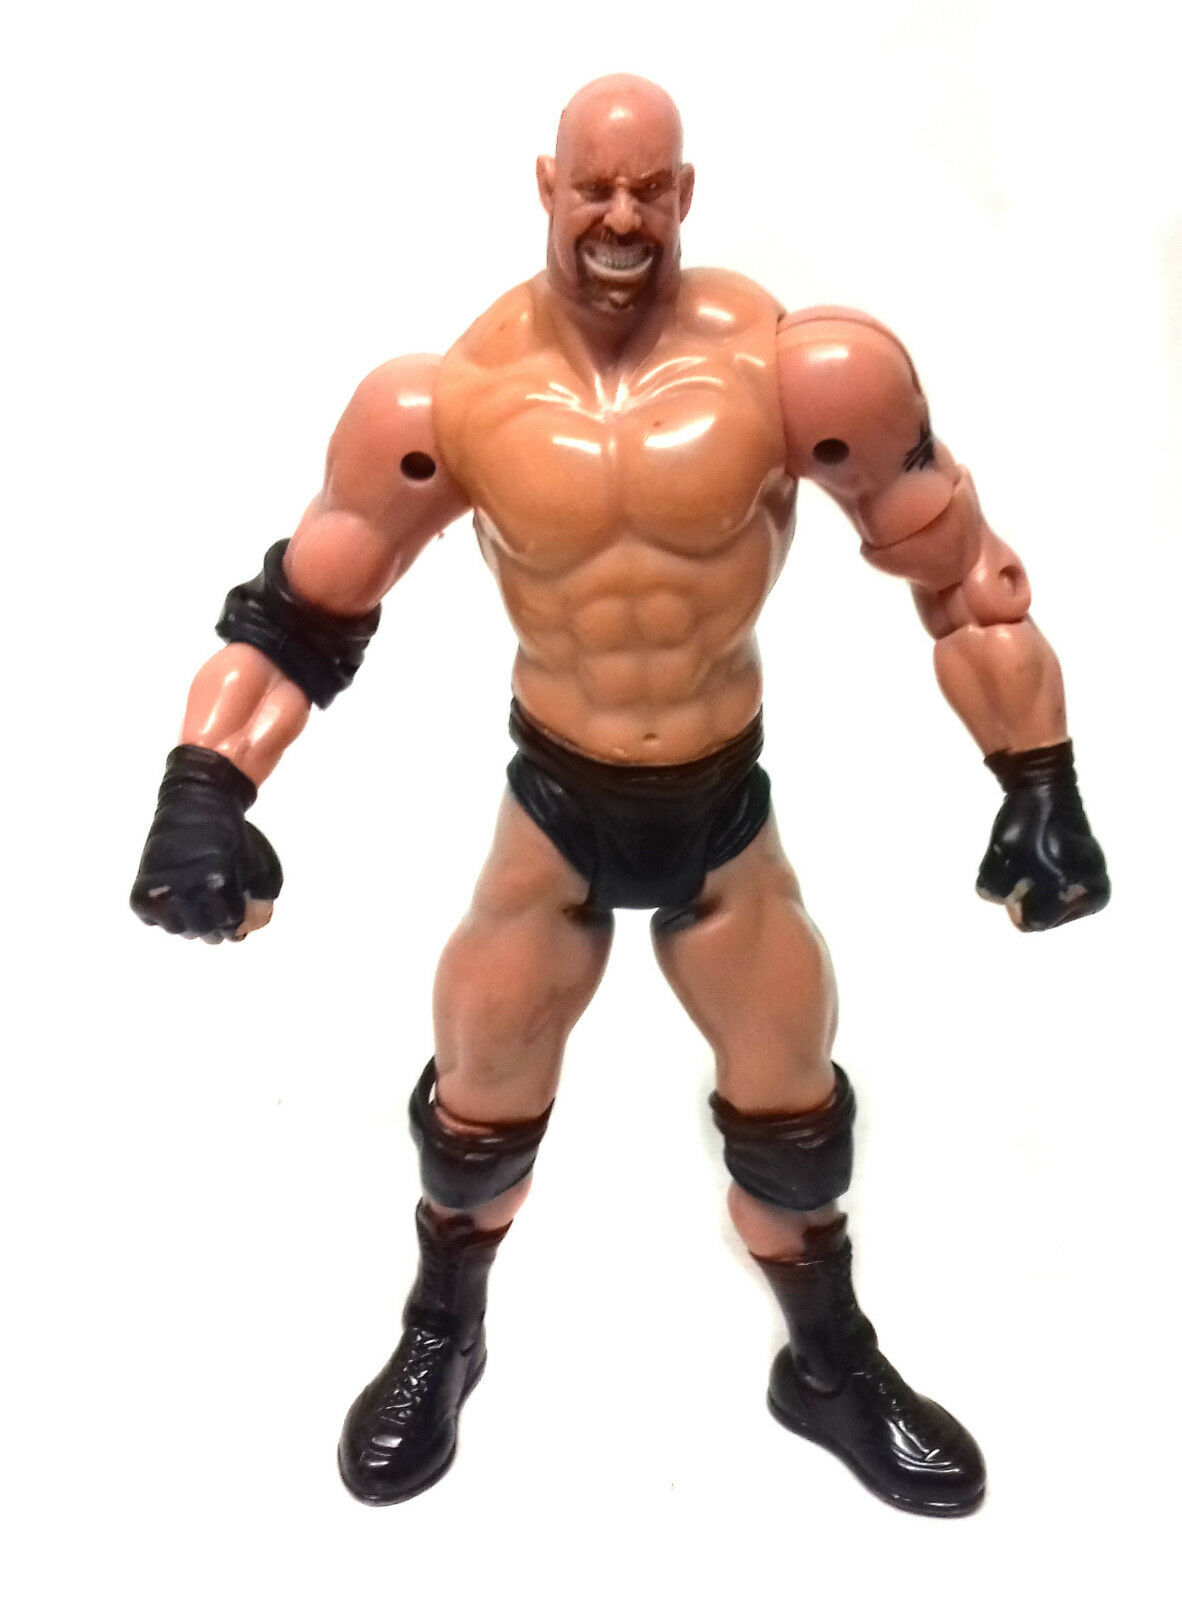 WWE Wrestling leggenda oroberg toy action figure RARA VERSIONE-GRATIS UK POST